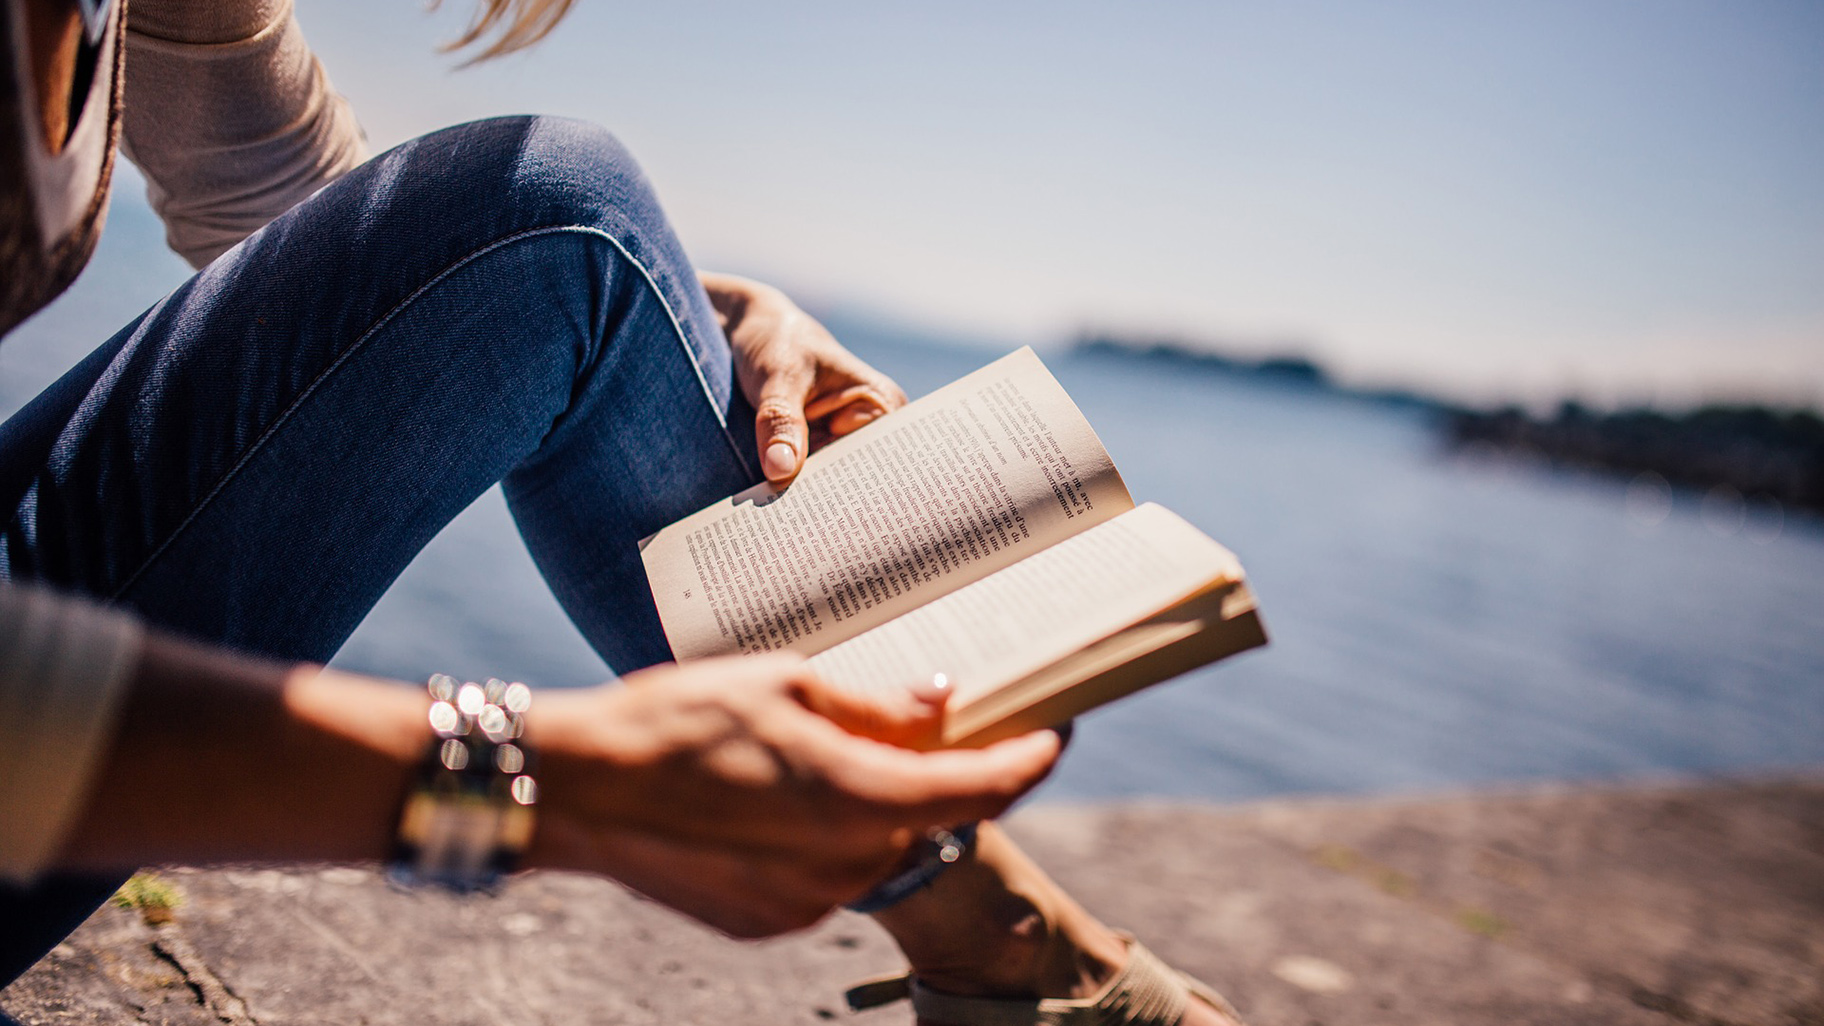 Summer Reading List 2019: New and Old Books to Explore